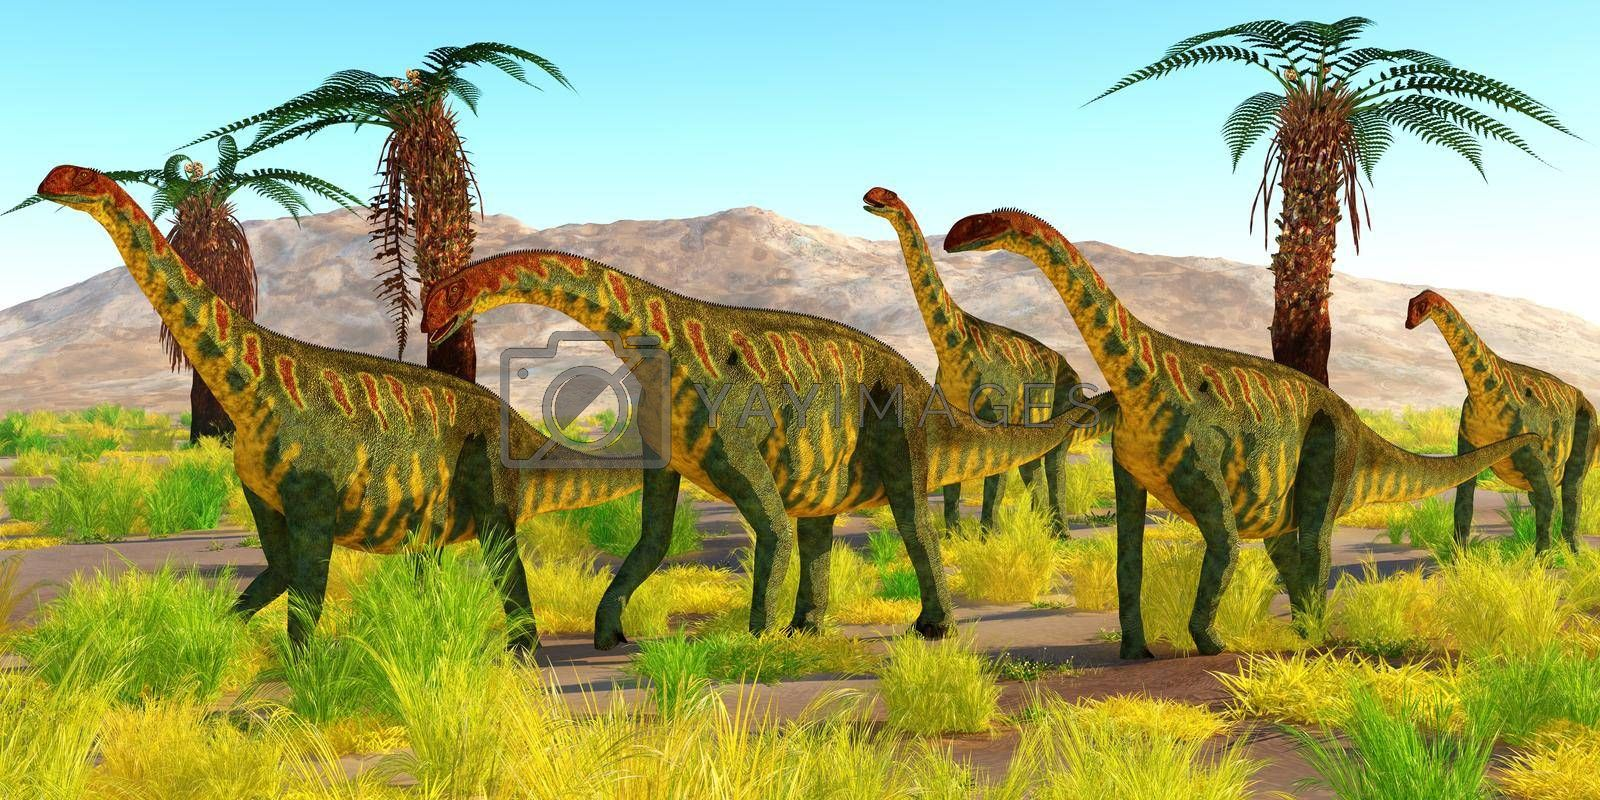 A herd of Jobaria dinosaurs travel together in the Sahara desert, Africa during the Jurassic Period.